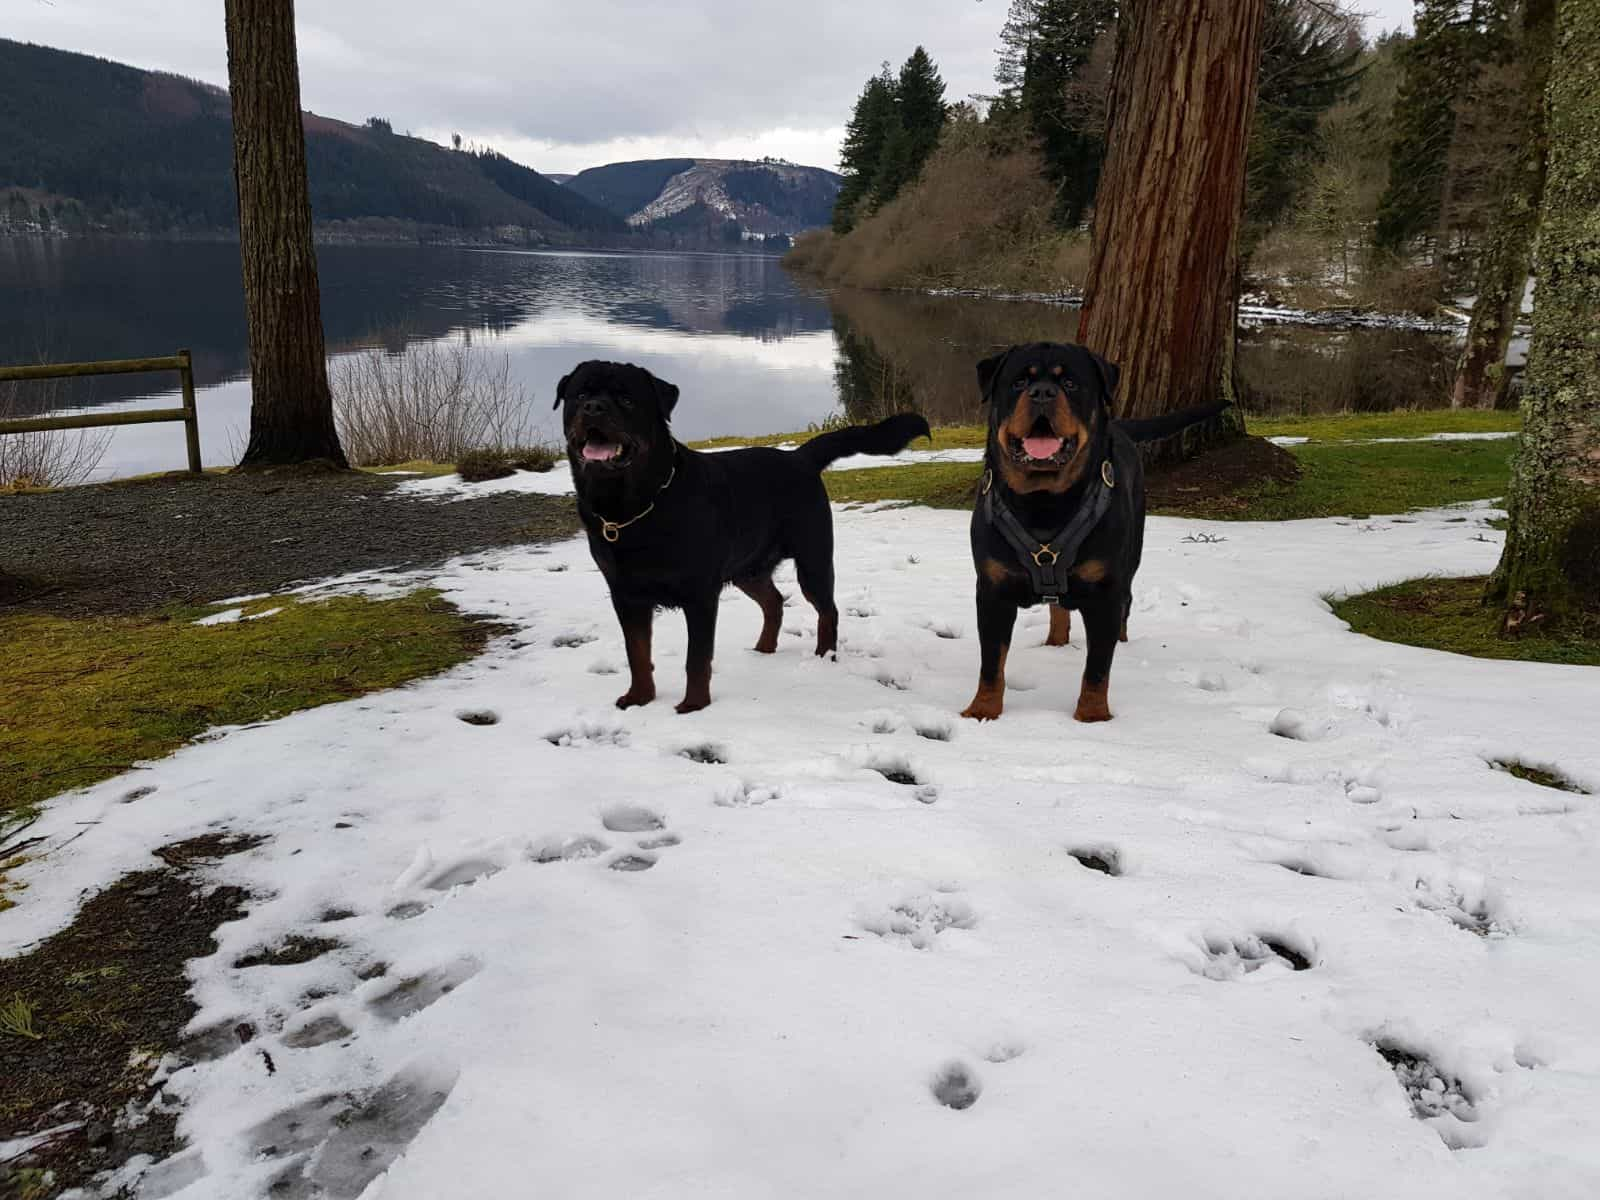 Security dogs in the snow